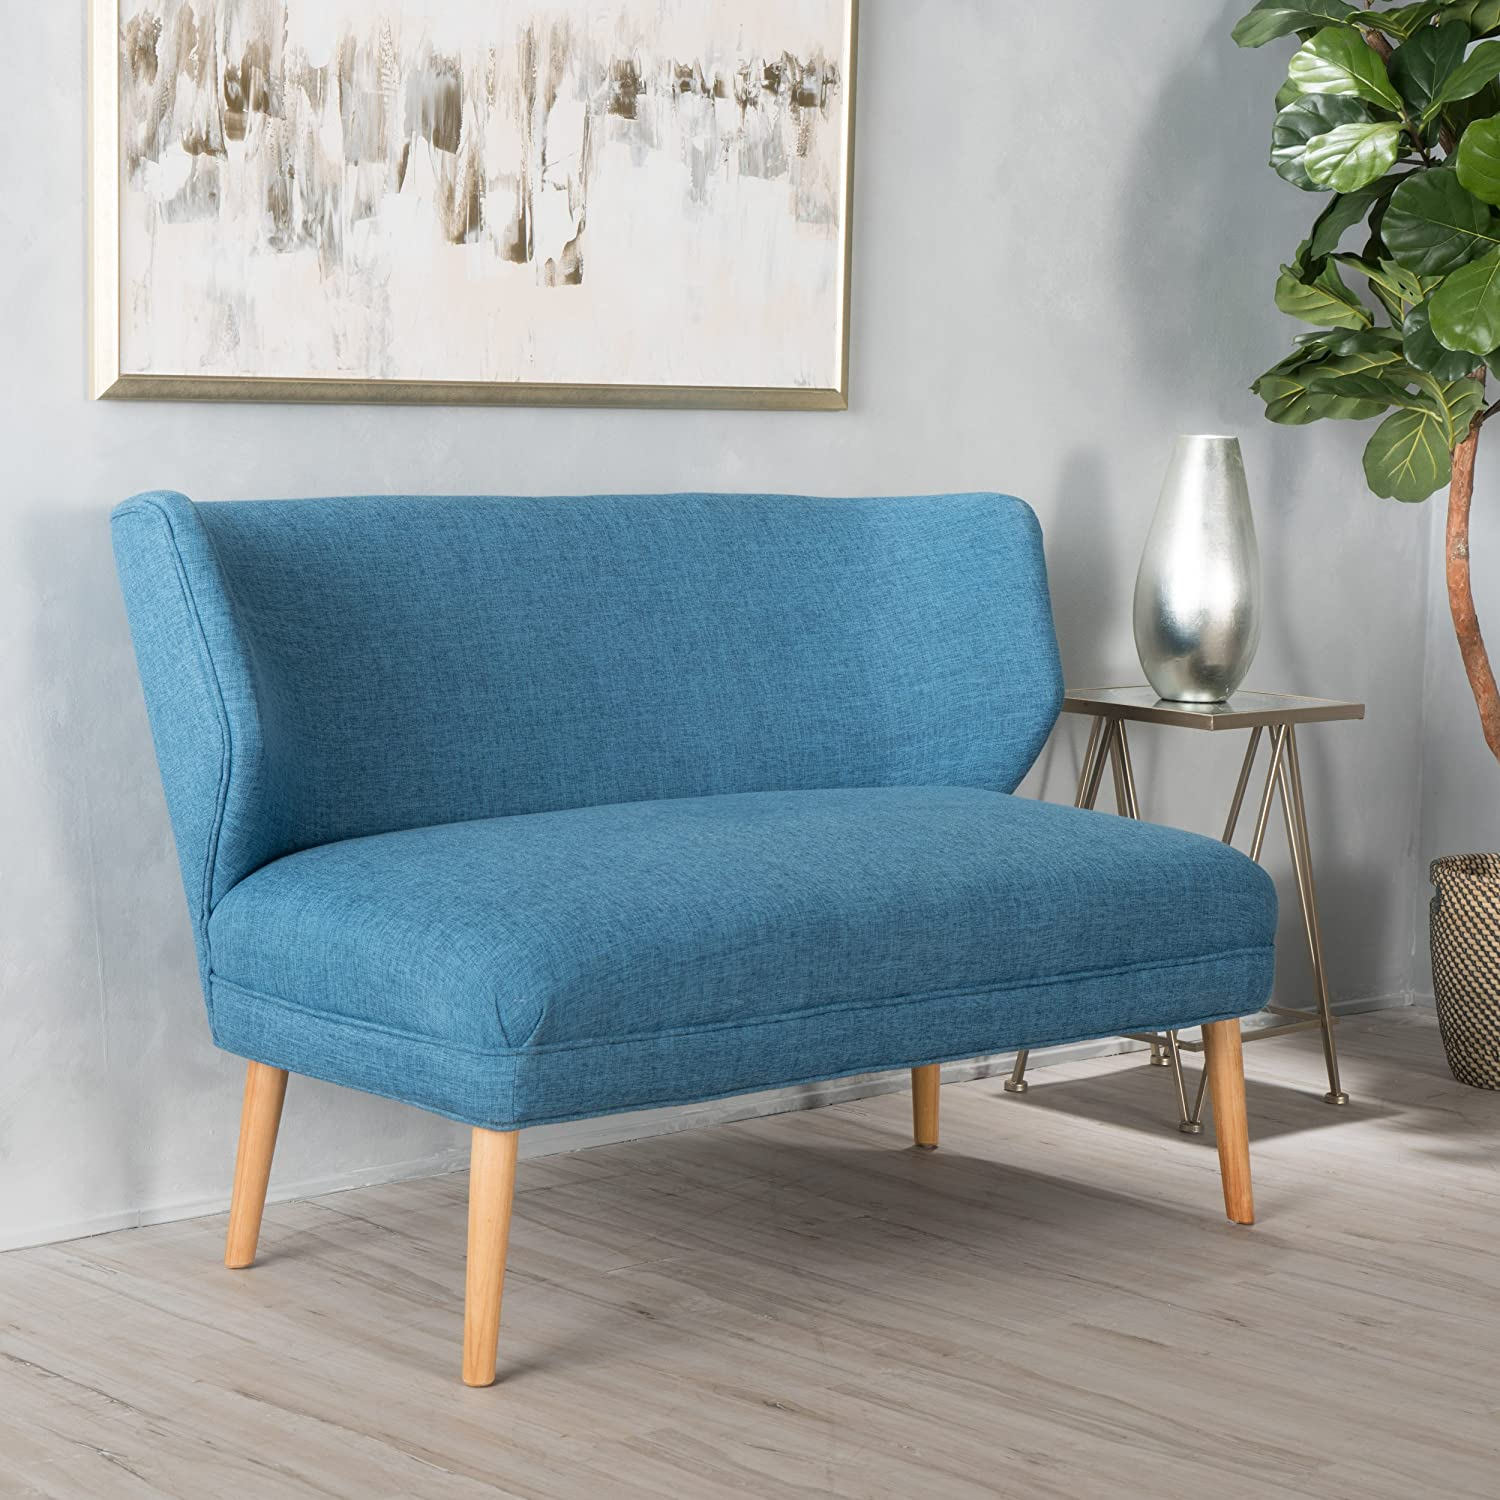 Christopher Knight Home Dumont Mid Century Modern Fabric Loveseat Sofa Settee Blue